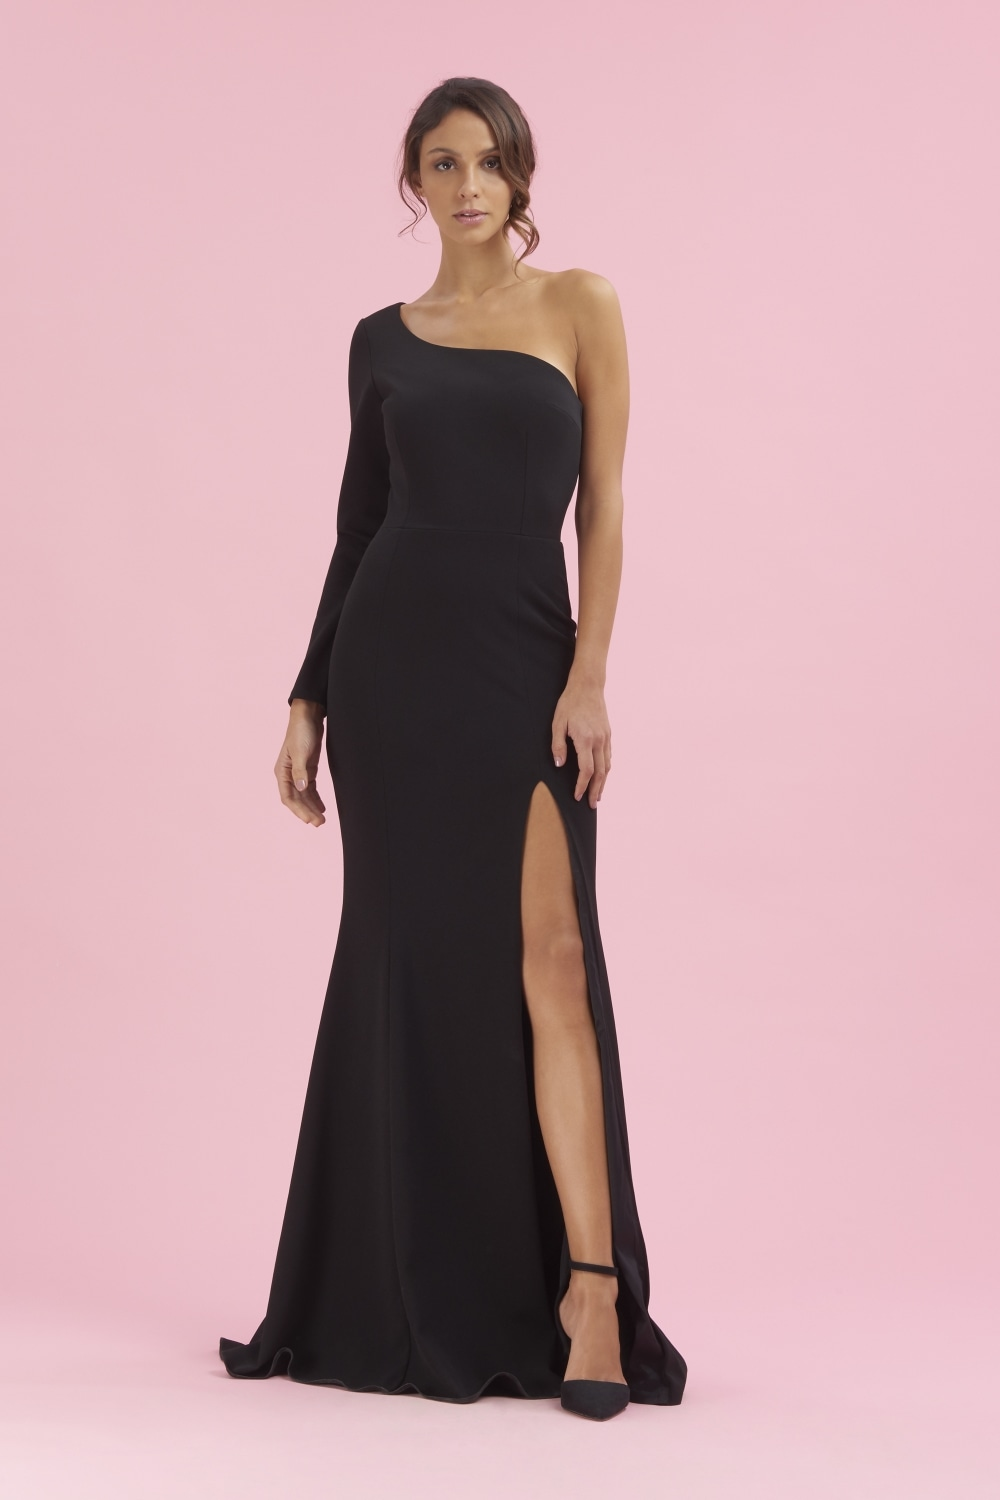 The Pretty Dress Company Biarritz One Shoulder Gown